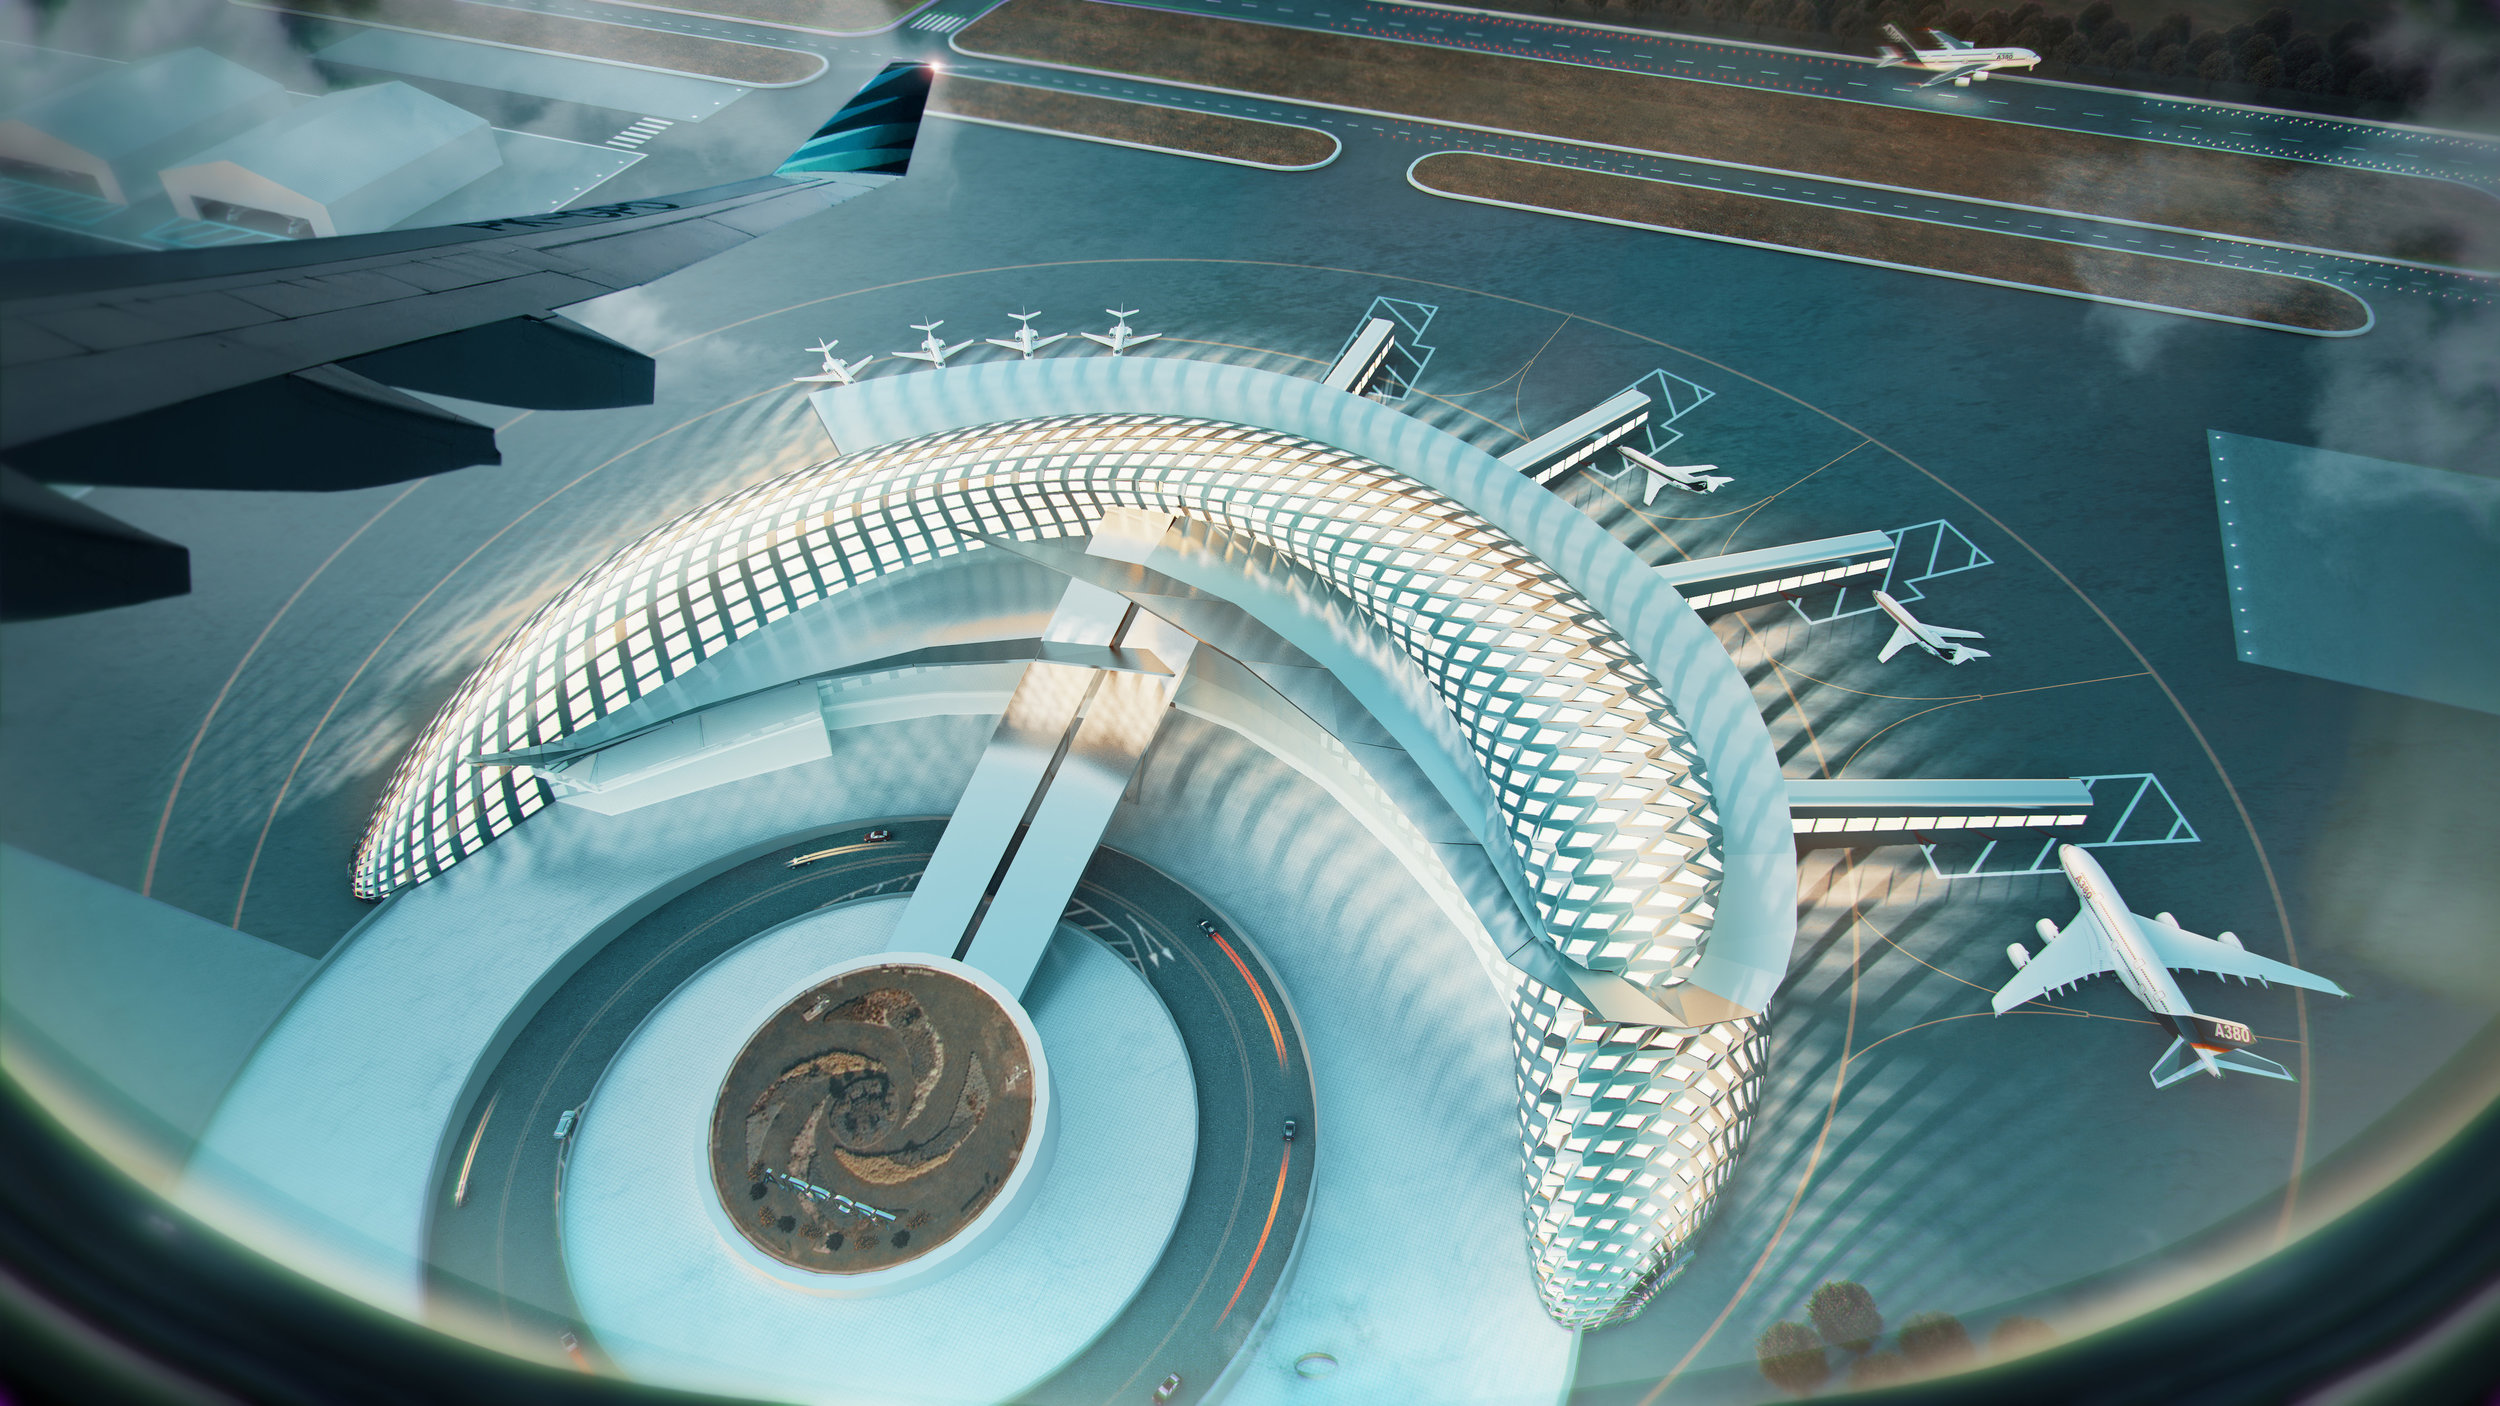 Airport_Concept_Aerial 1.jpg